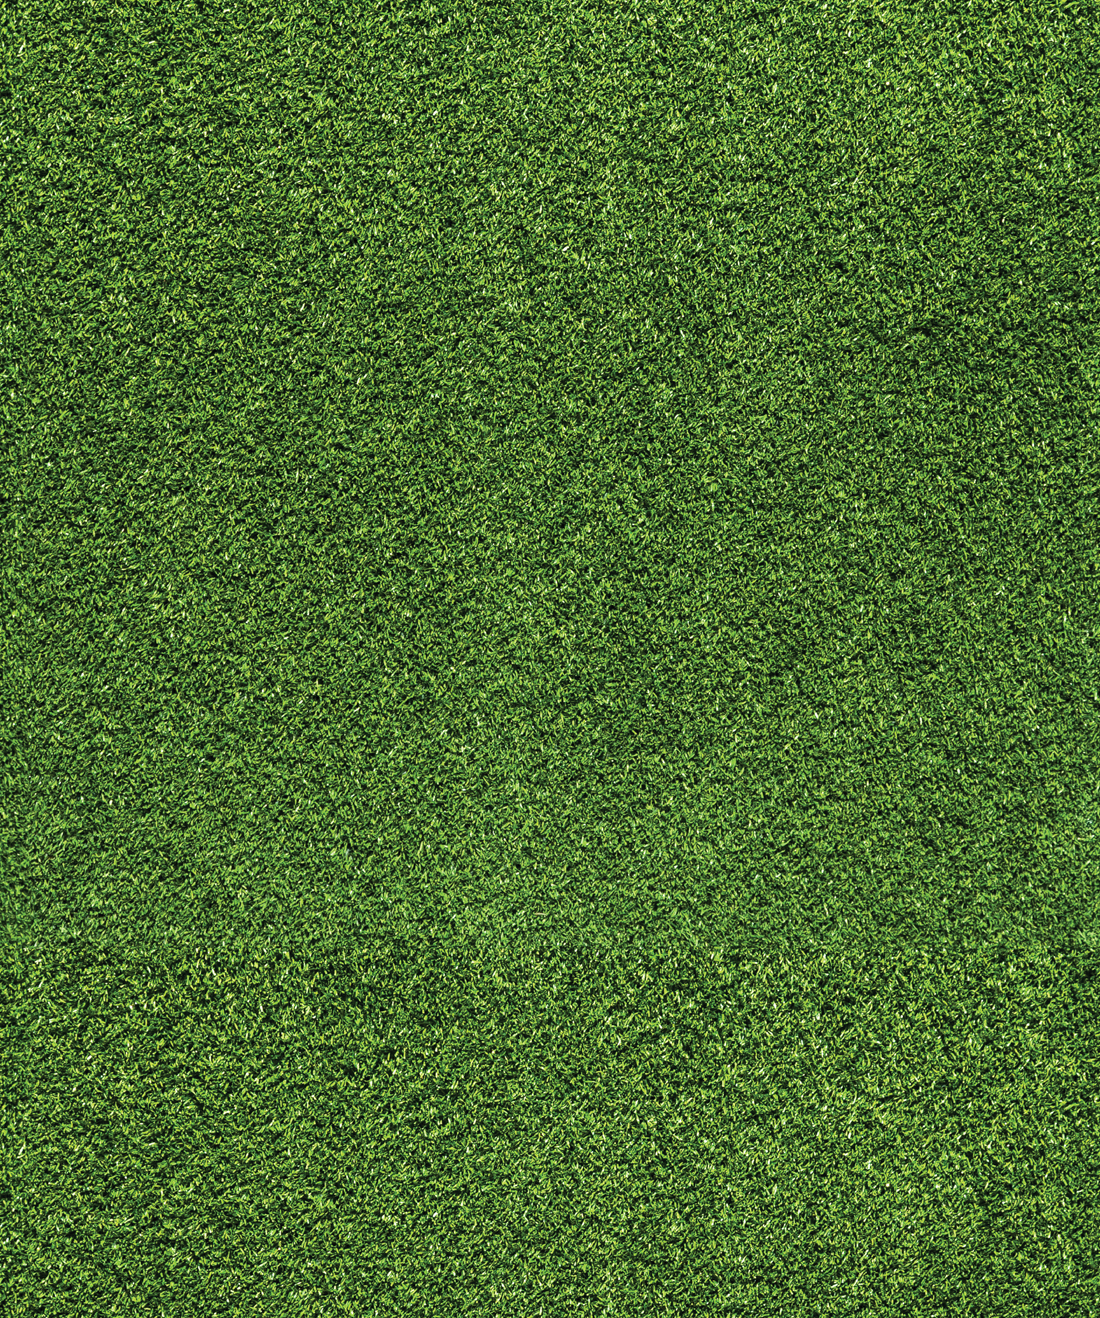 Artificial Turf Wallpaper